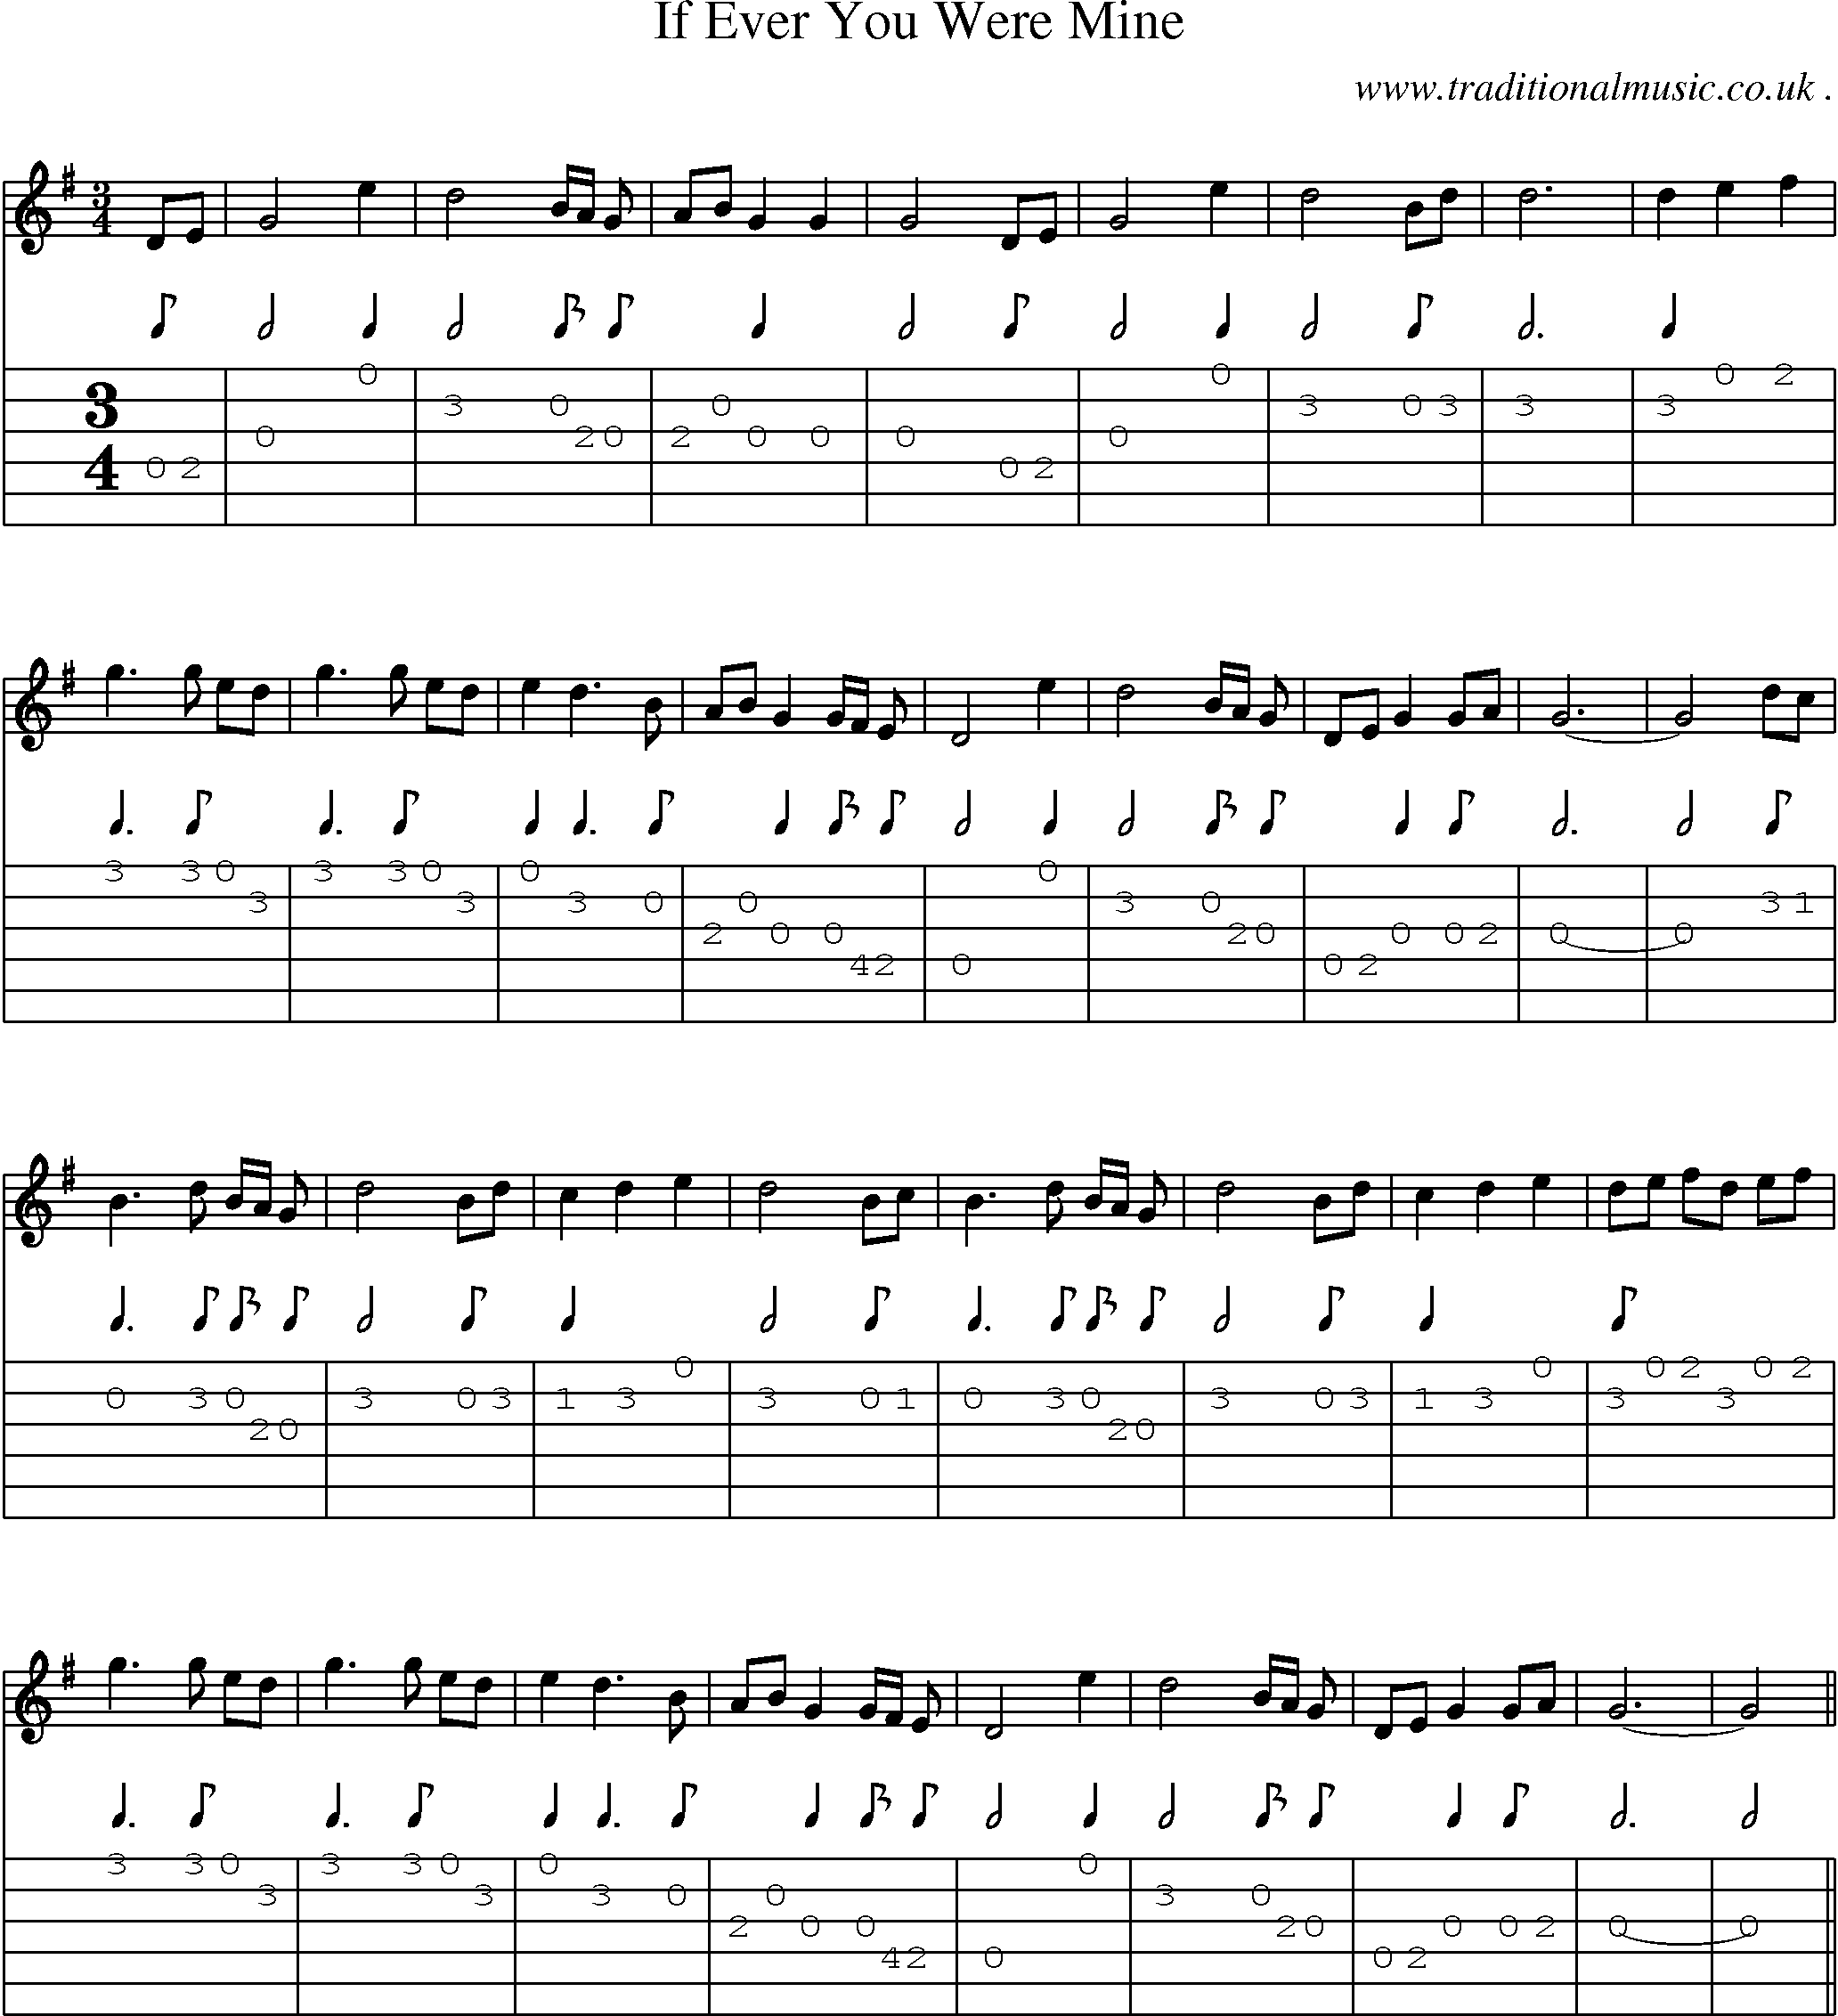 Sheet Music With Chords Timiznceptzmusic